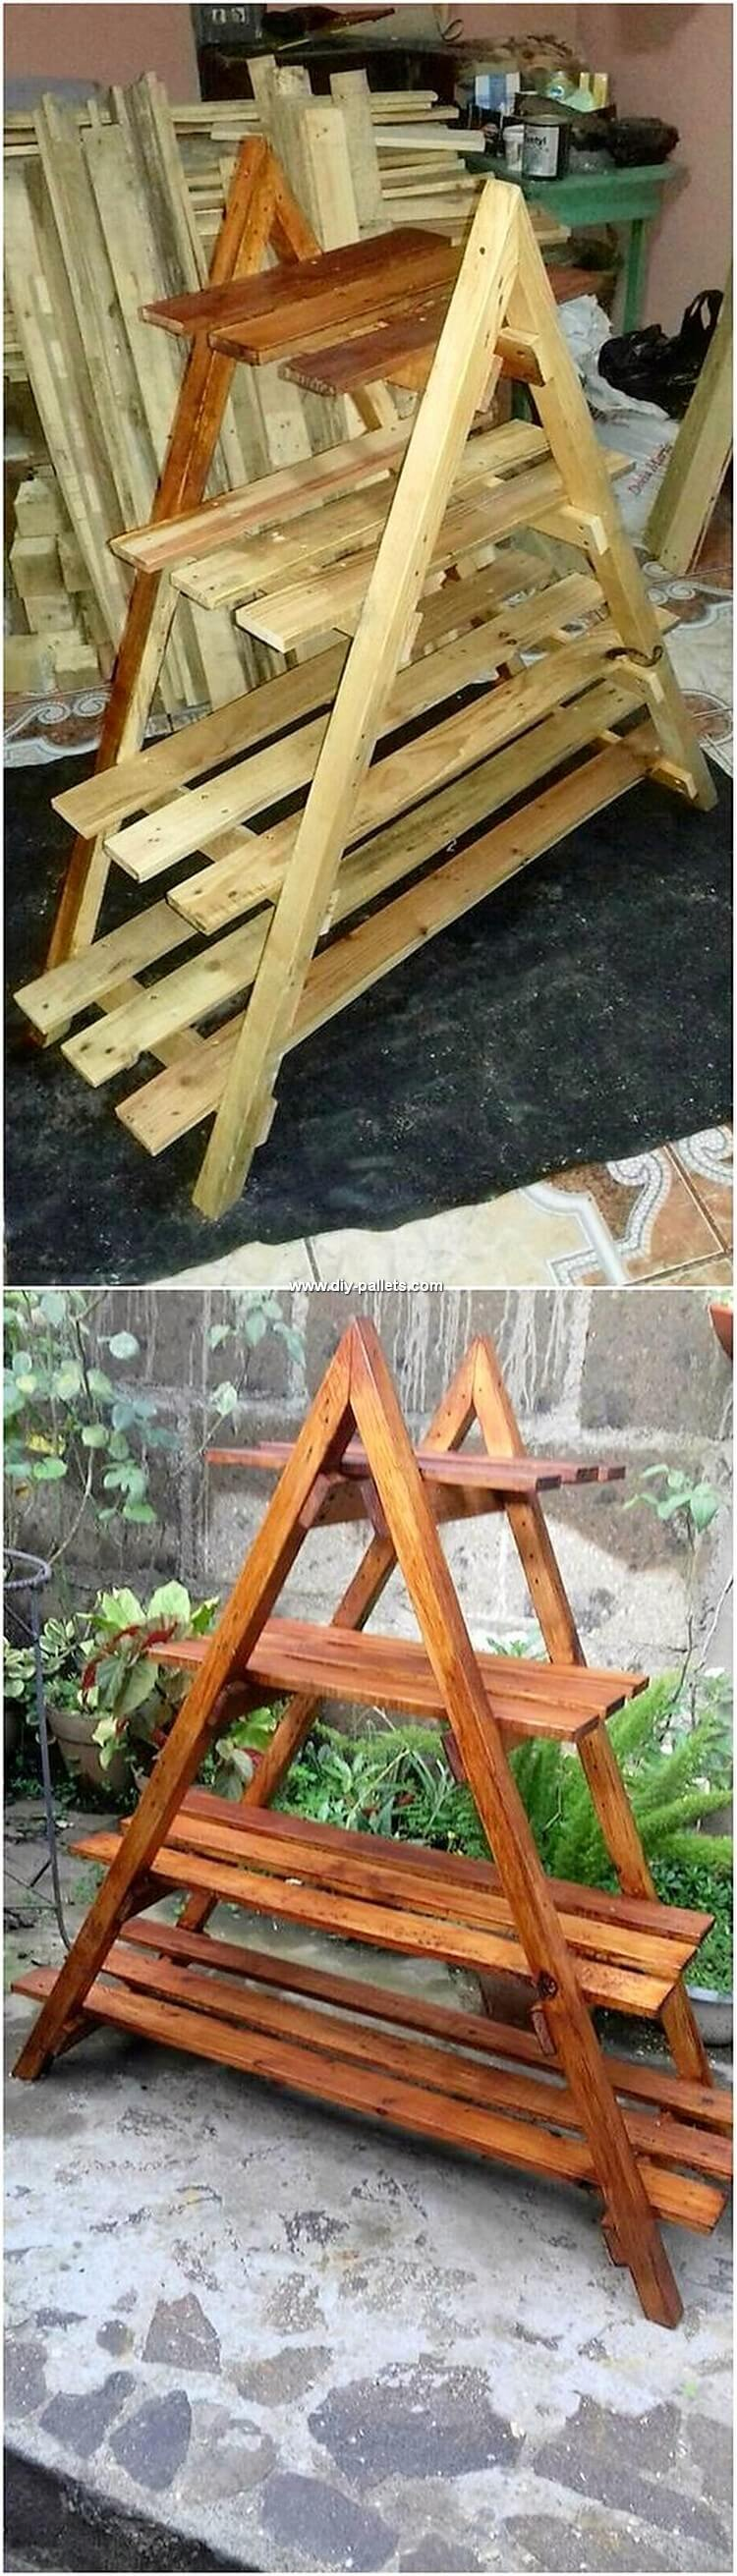 Pallet Shelving Stand